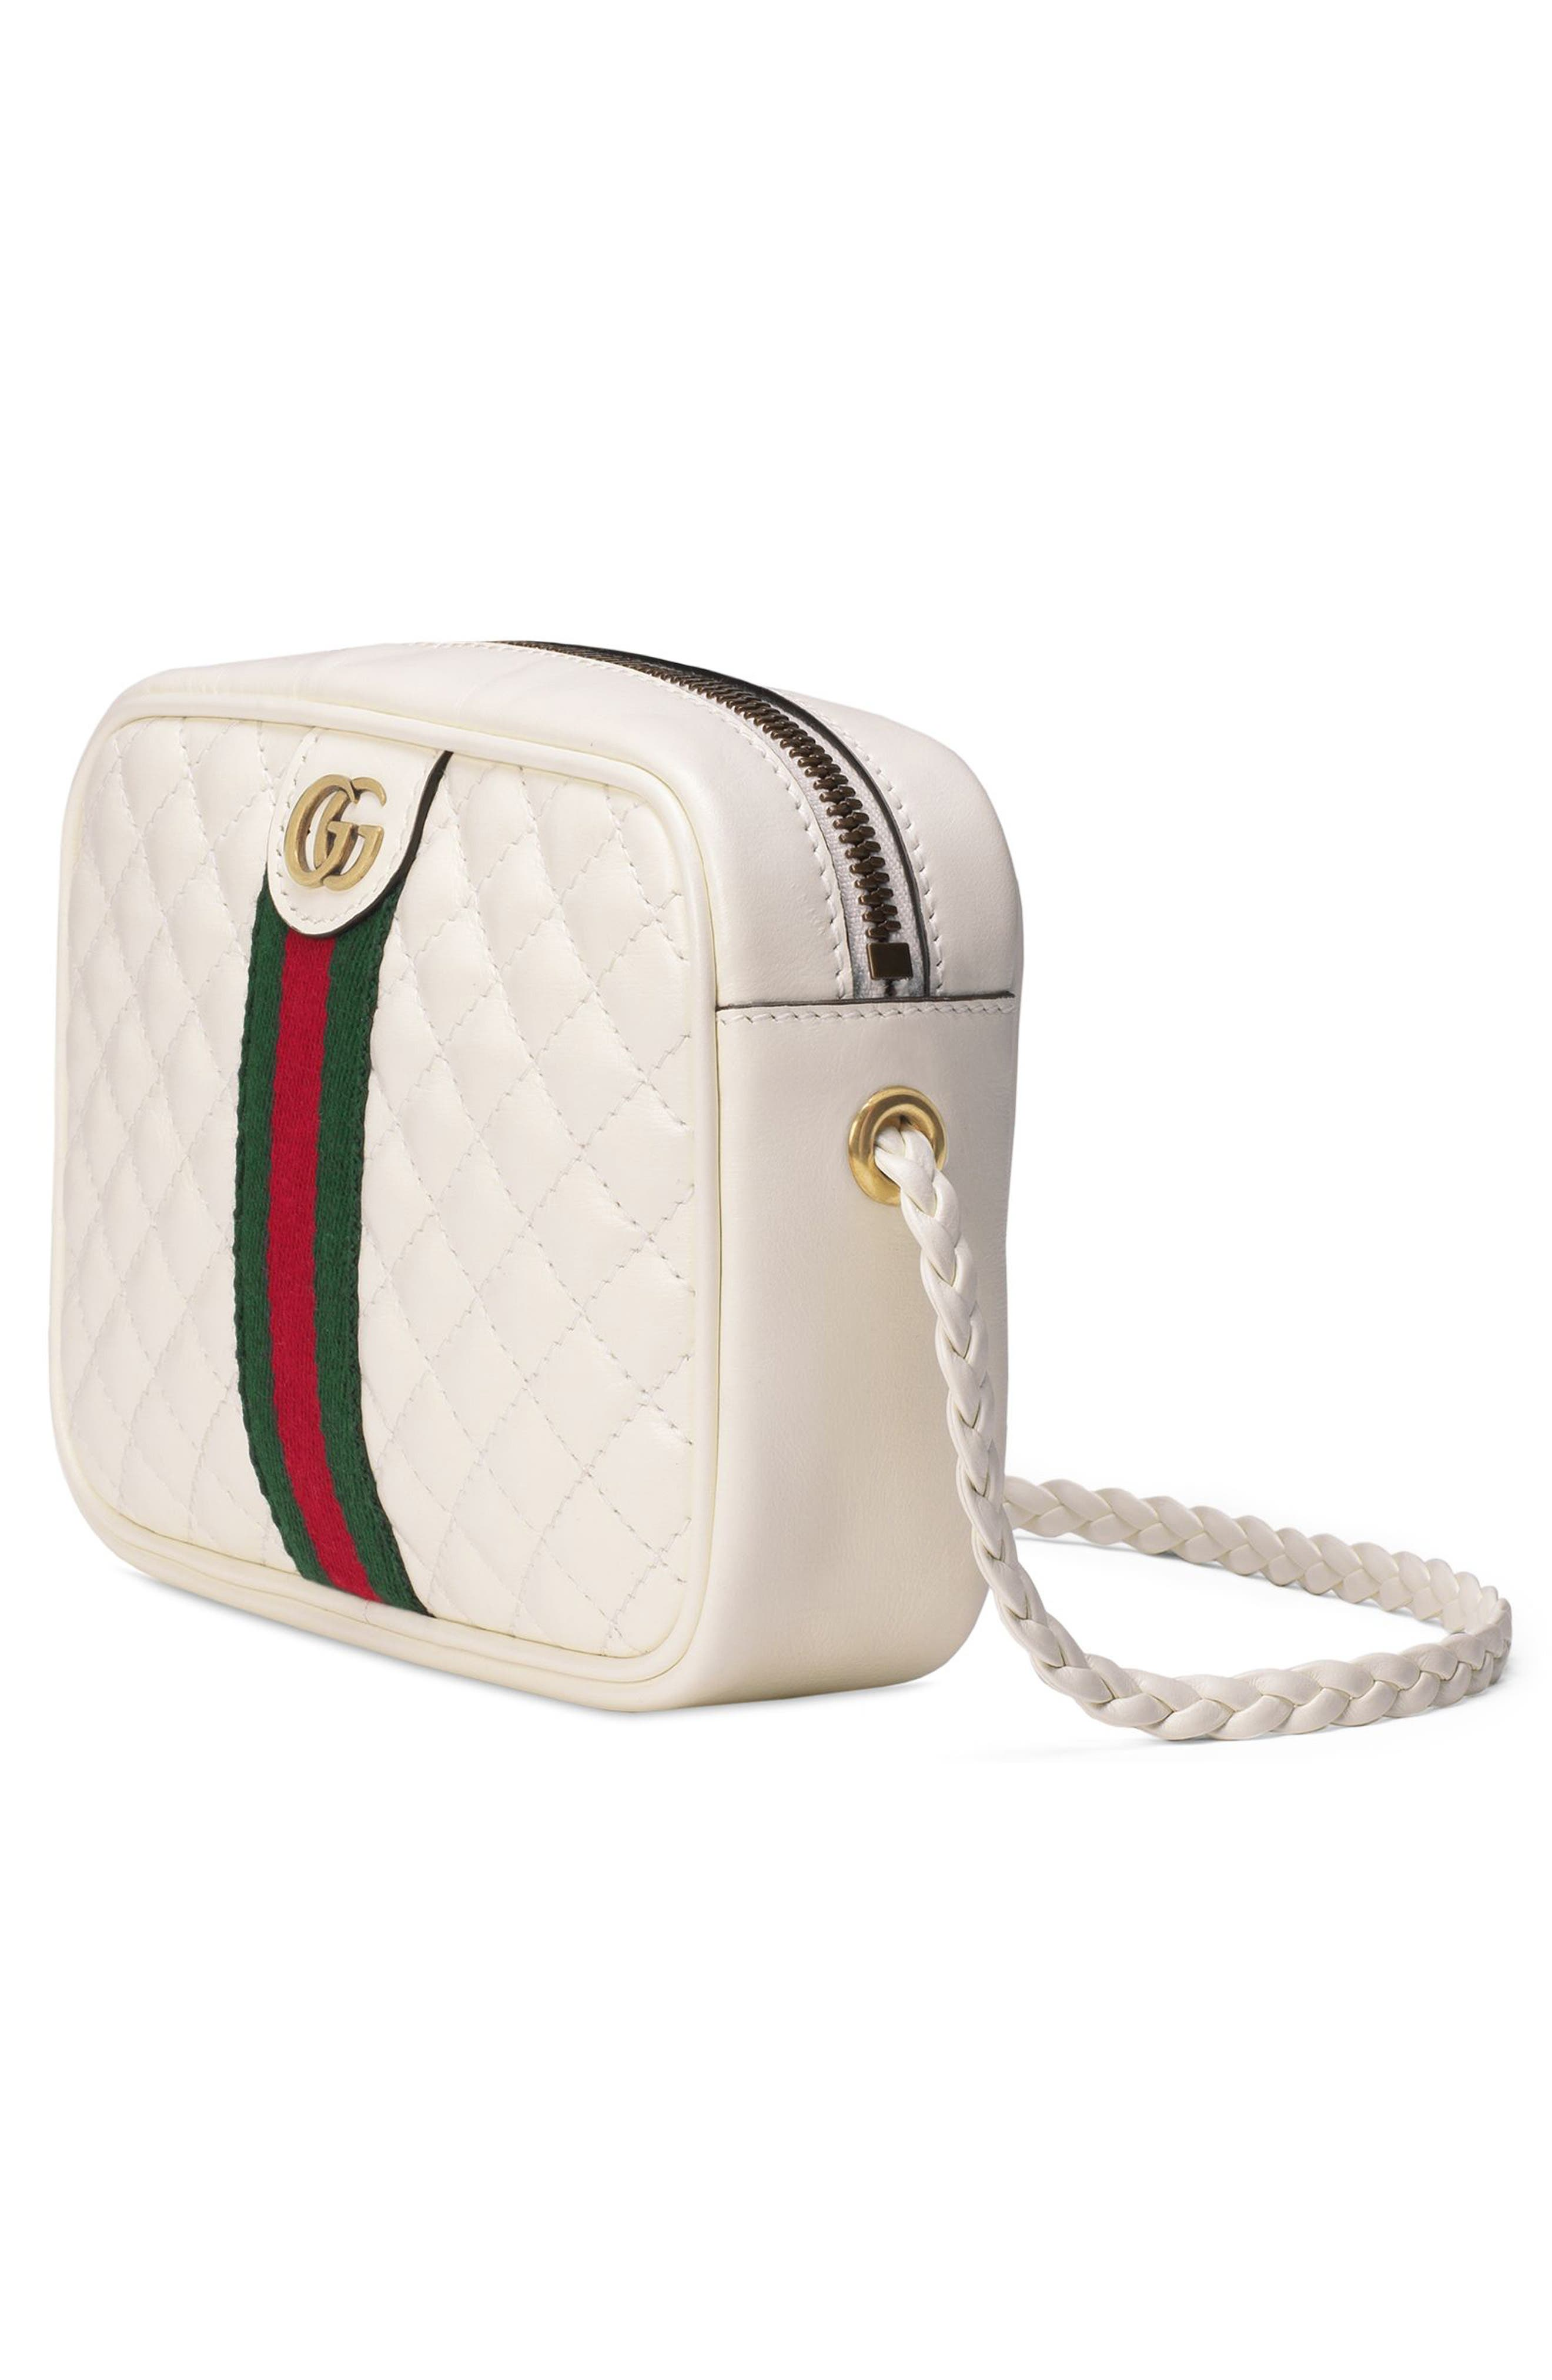 Small Quilted Leather Camera Bag,                             Alternate thumbnail 4, color,                             OFF WHITE/ VERT/ RED